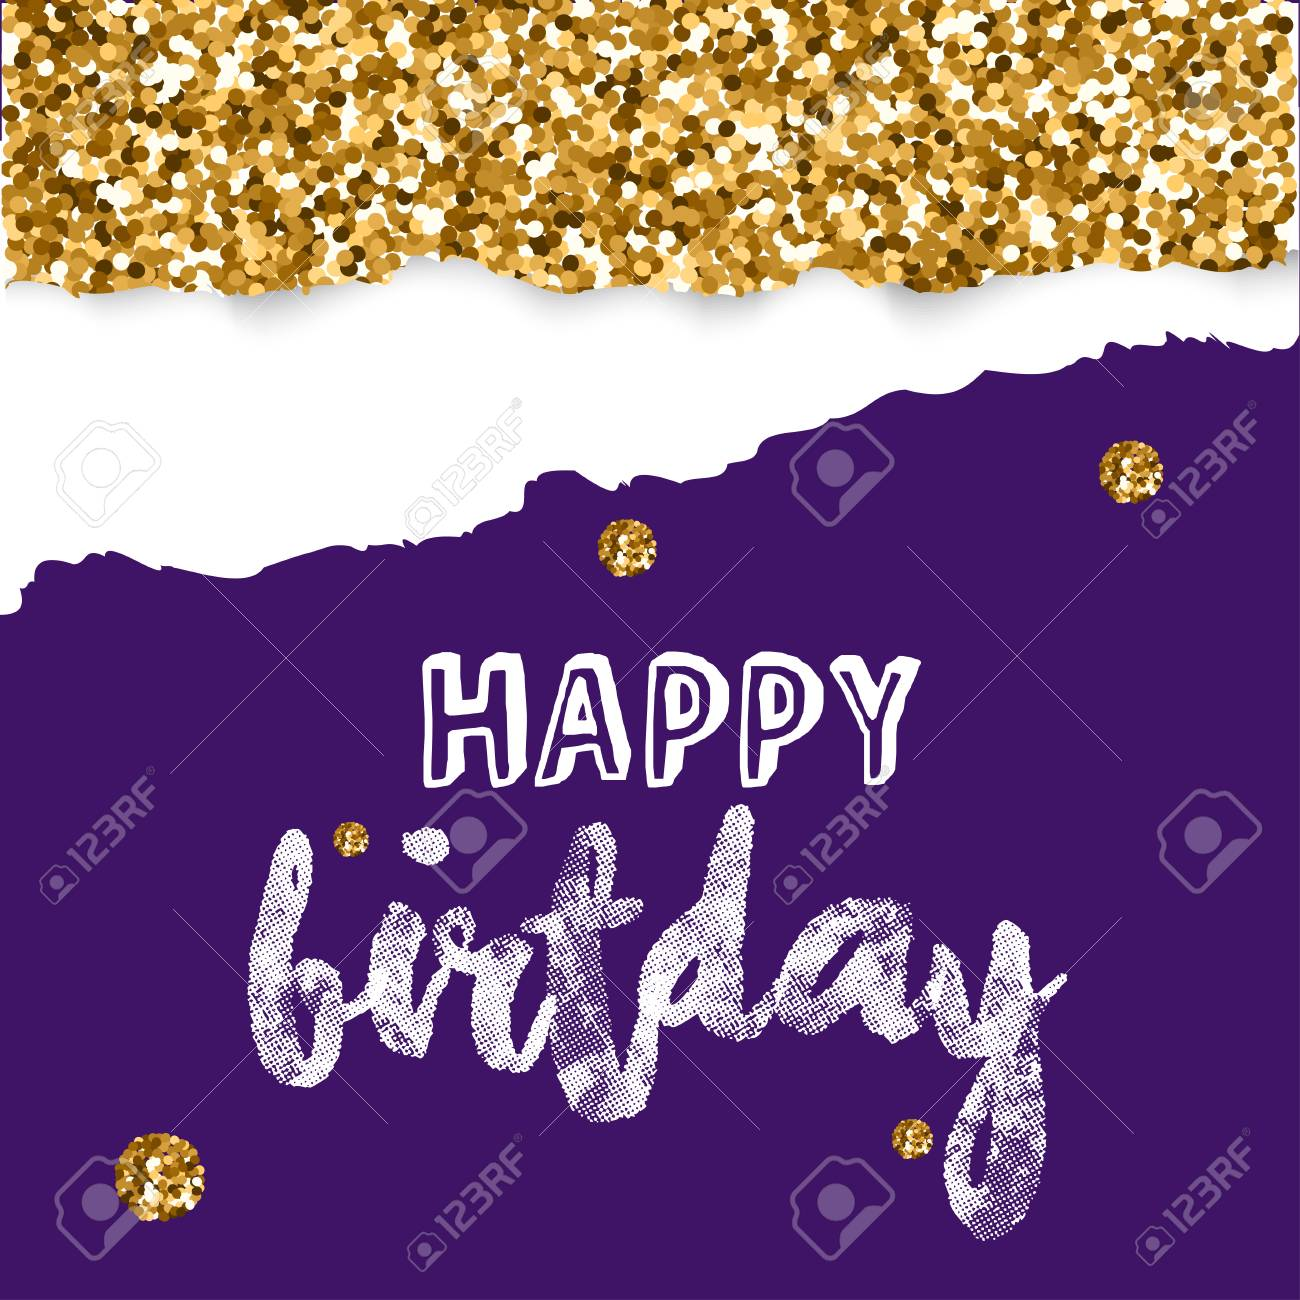 Birthday Greeting Cards With Gold Glitter Design Vector Illustration Stock